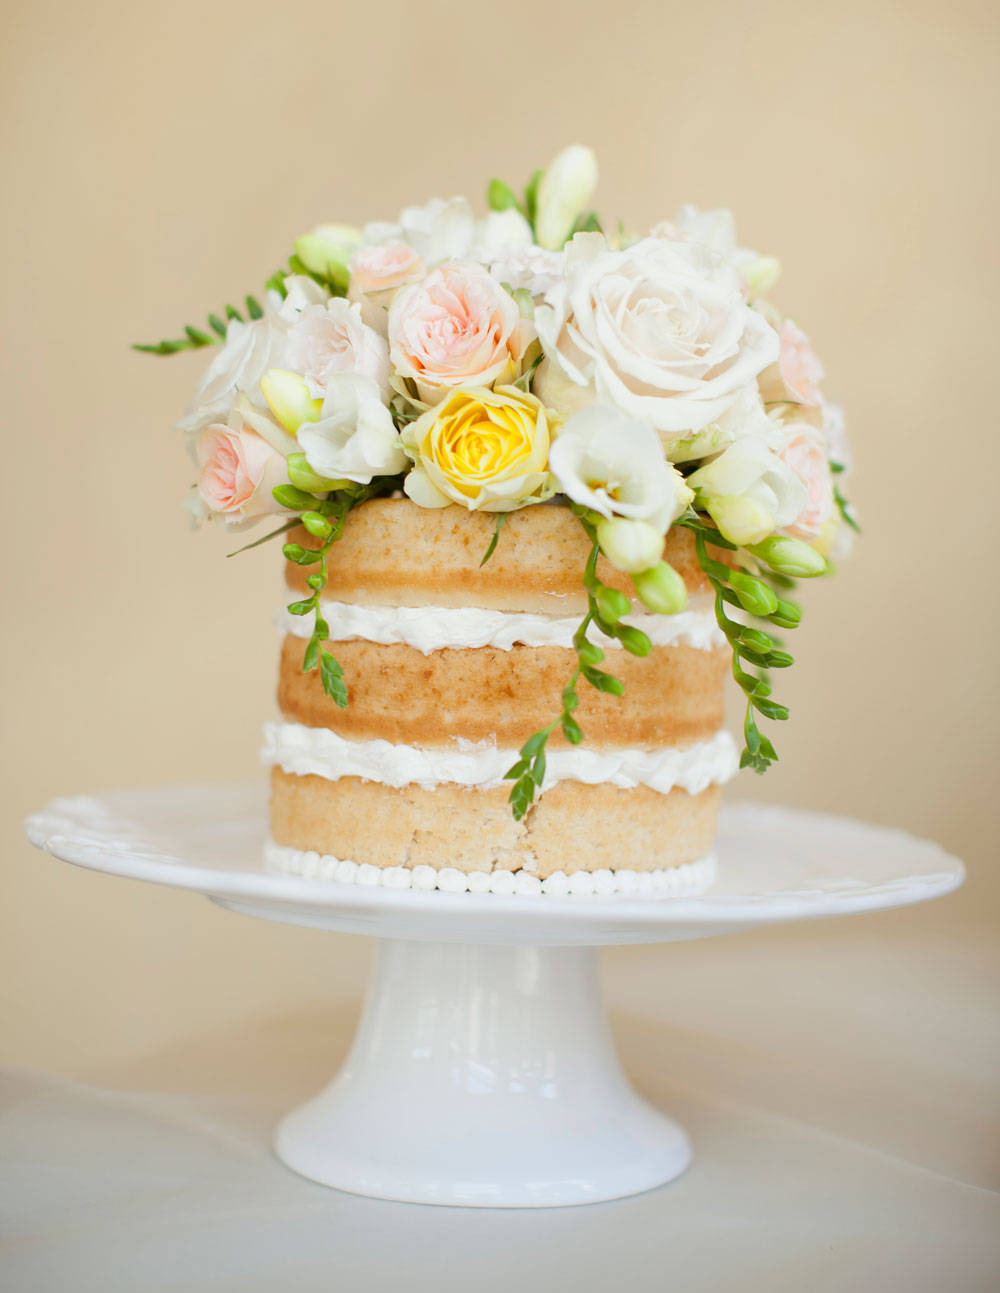 Cake Designs Without Icing : Wedding Cakes Without Fondant - Wedding Cakes Without Frosting